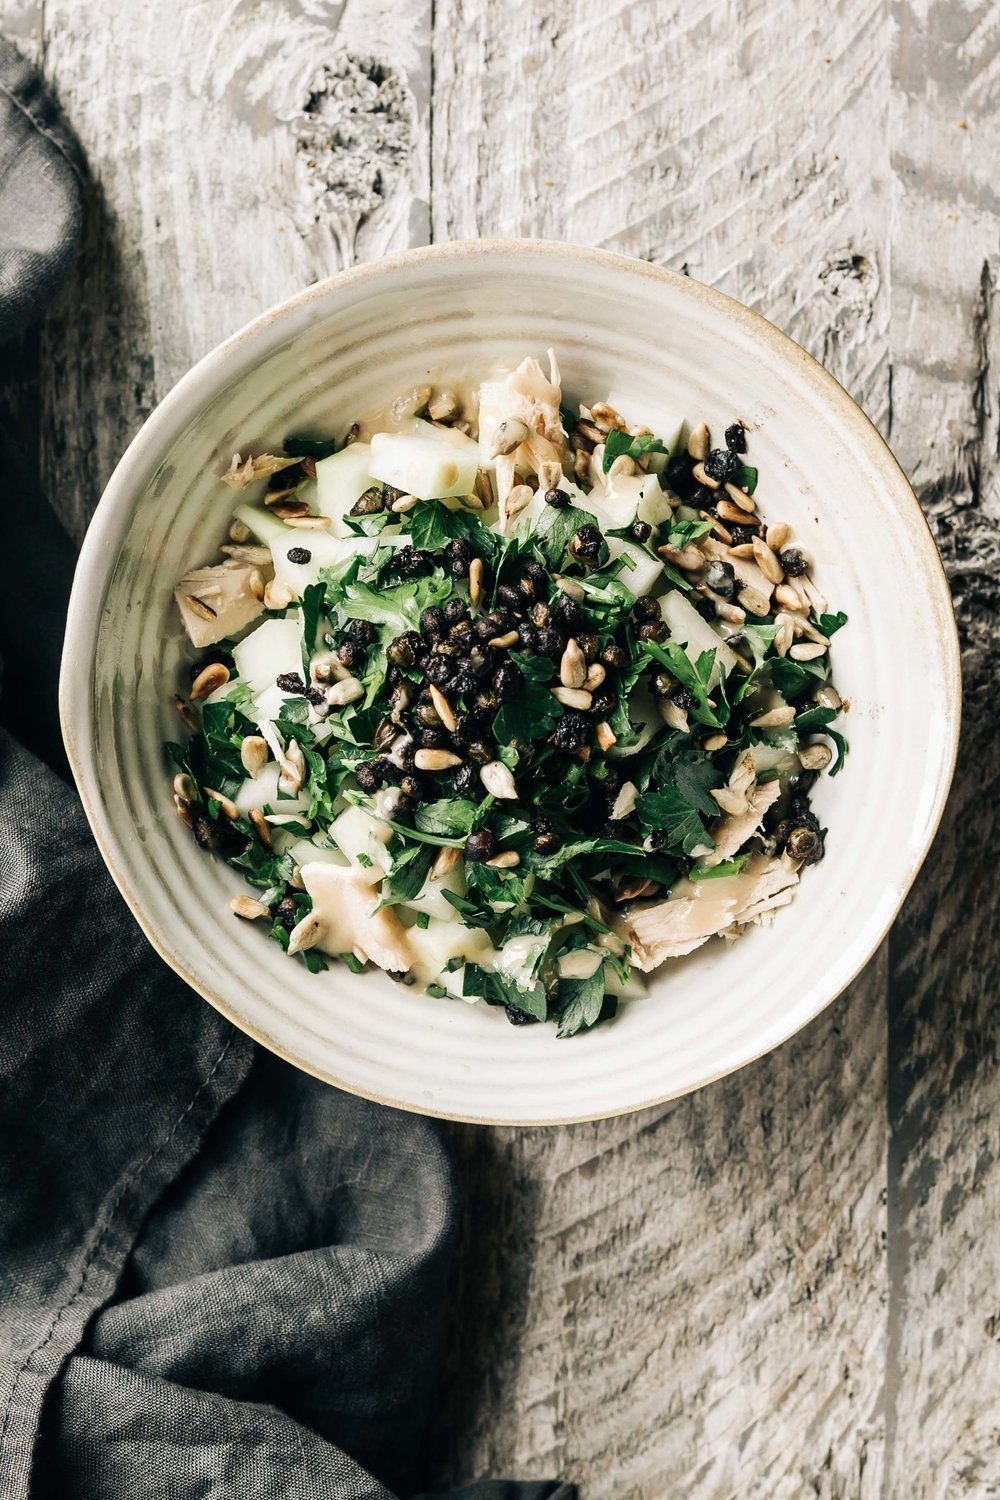 Kohlrabi Tuna Salad with Fried Capers